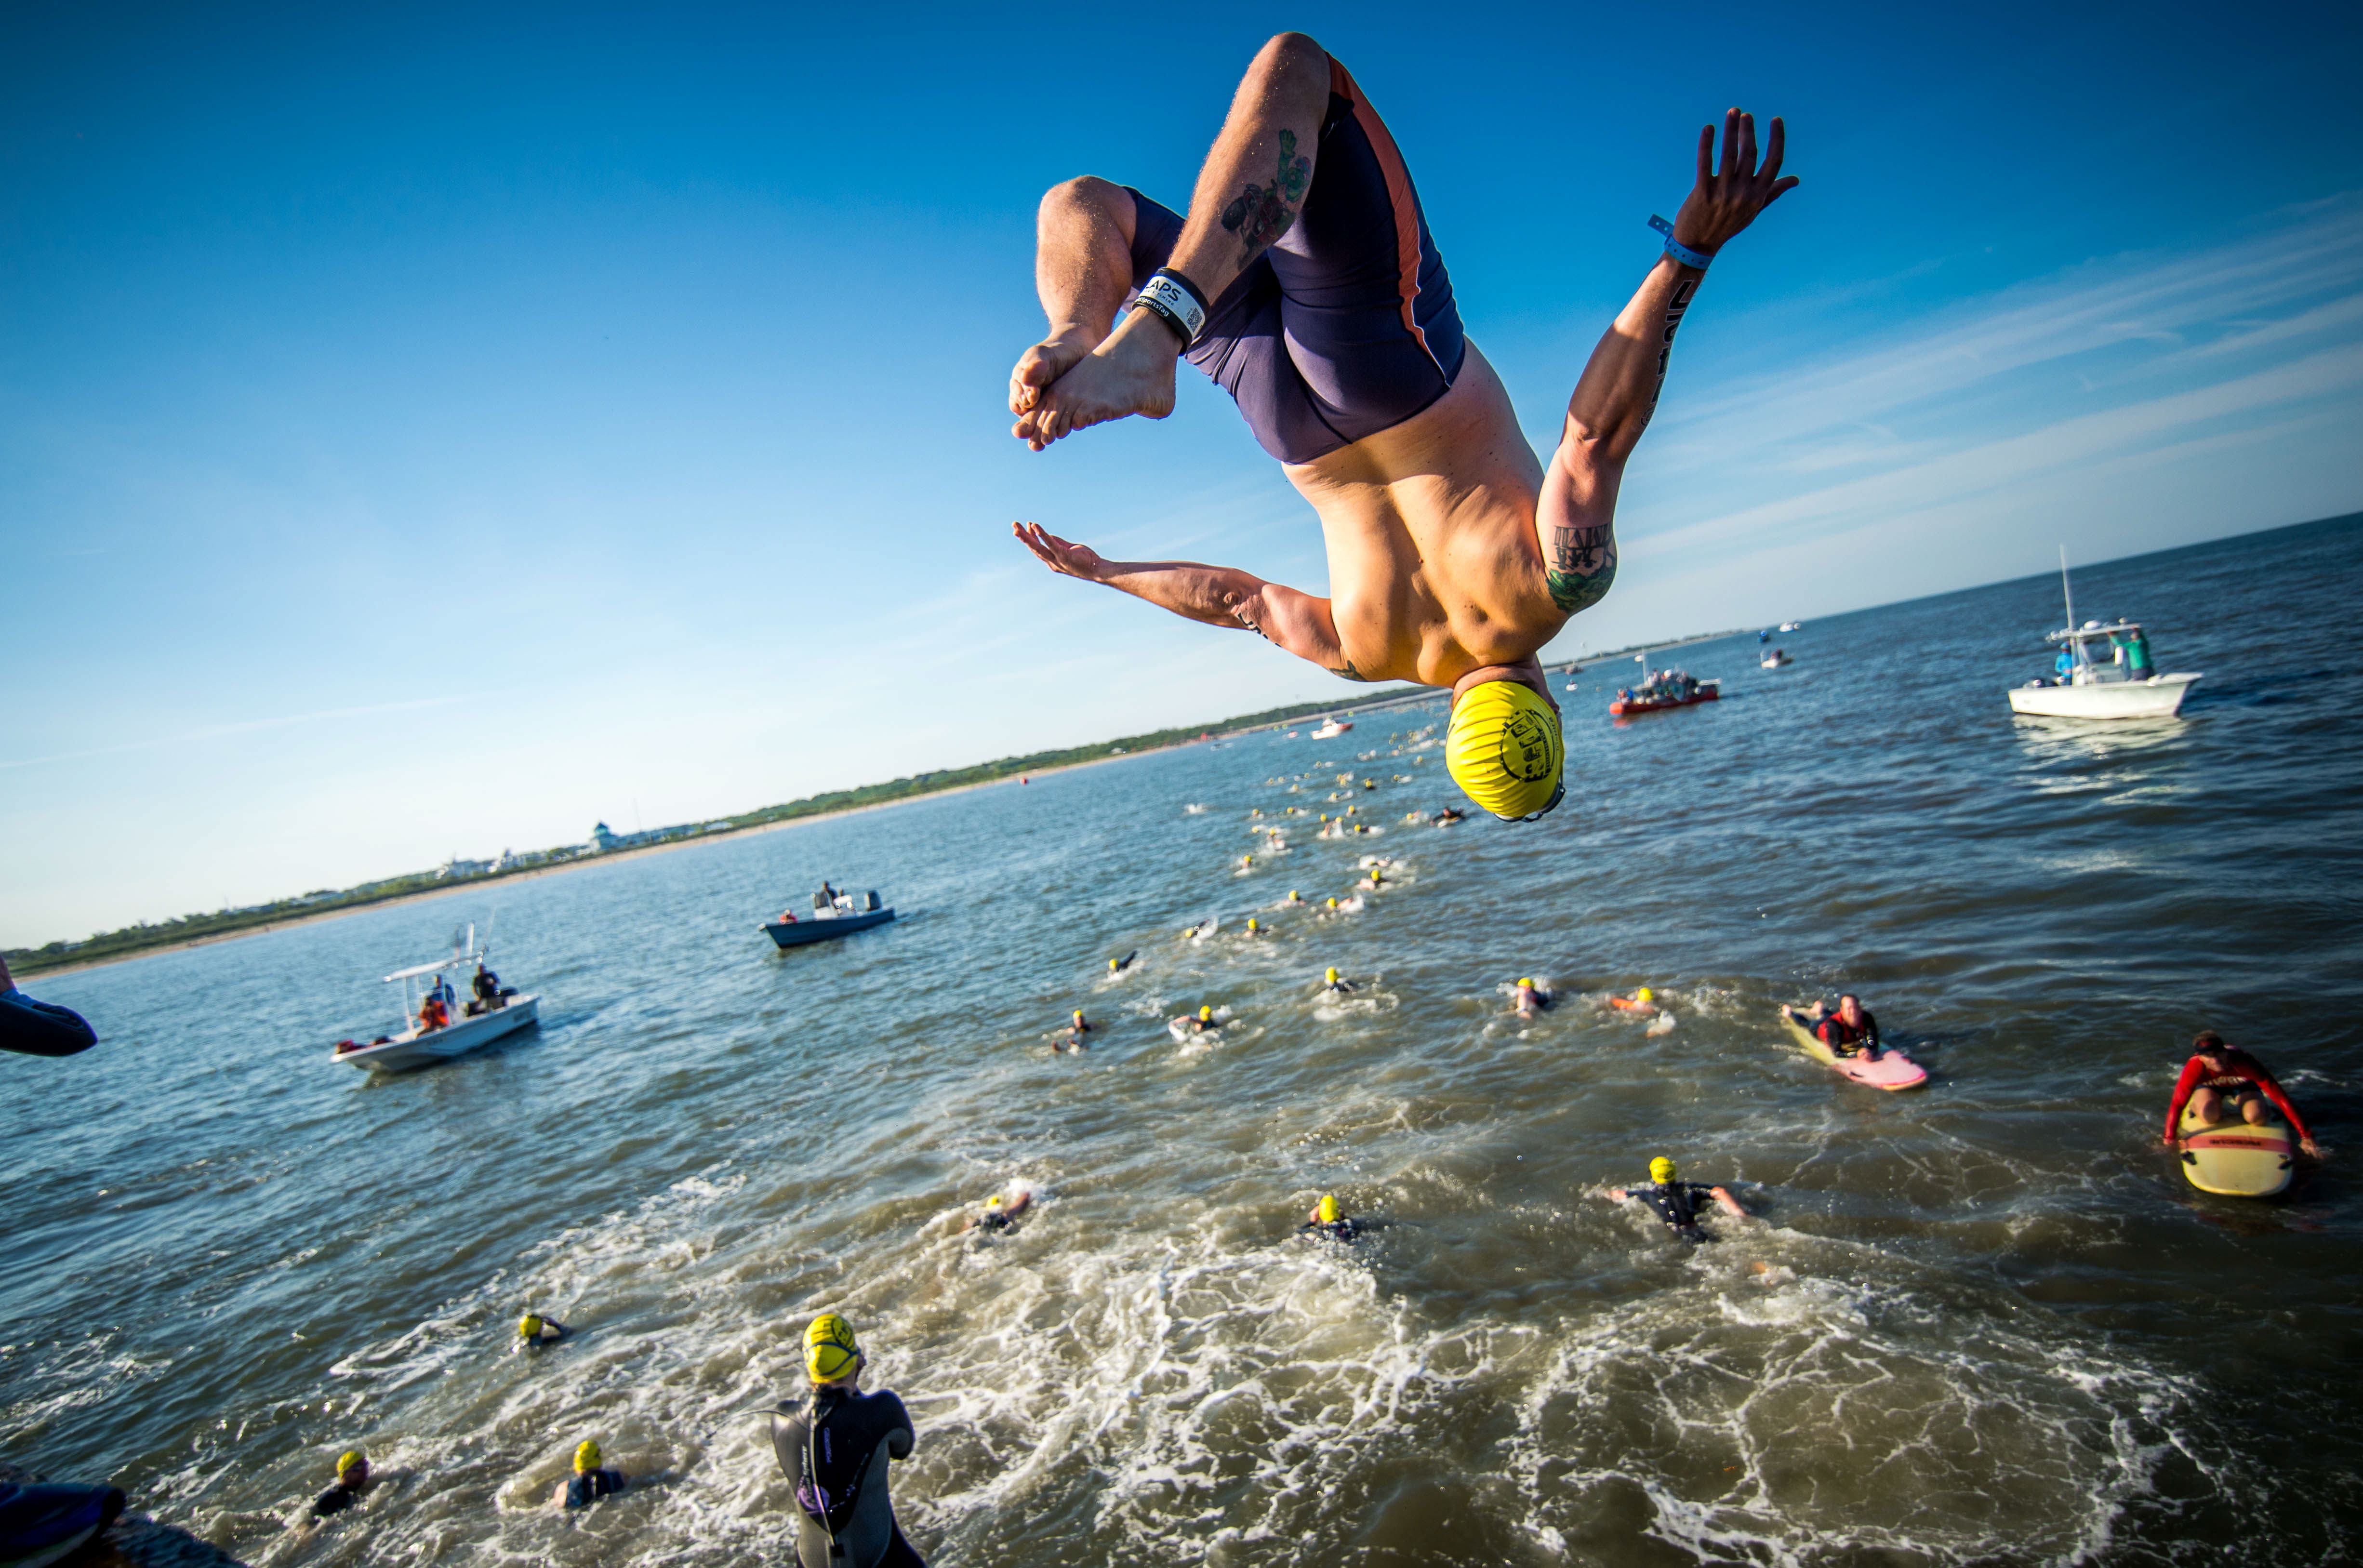 jump backflip - Escape From Lewes Open Water Classic Copy